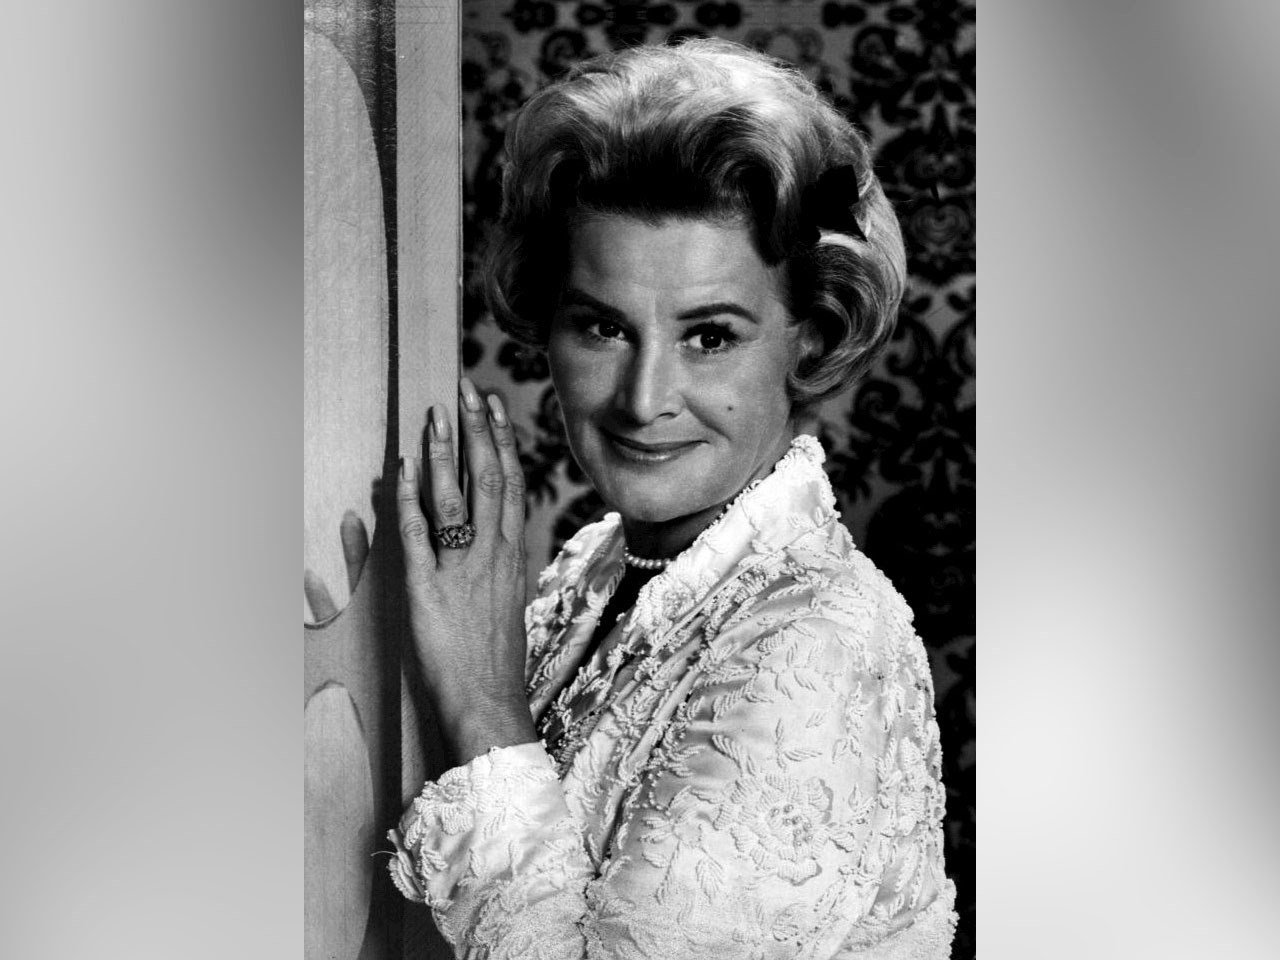 Rose Marie Latest News, Photos, and Videos